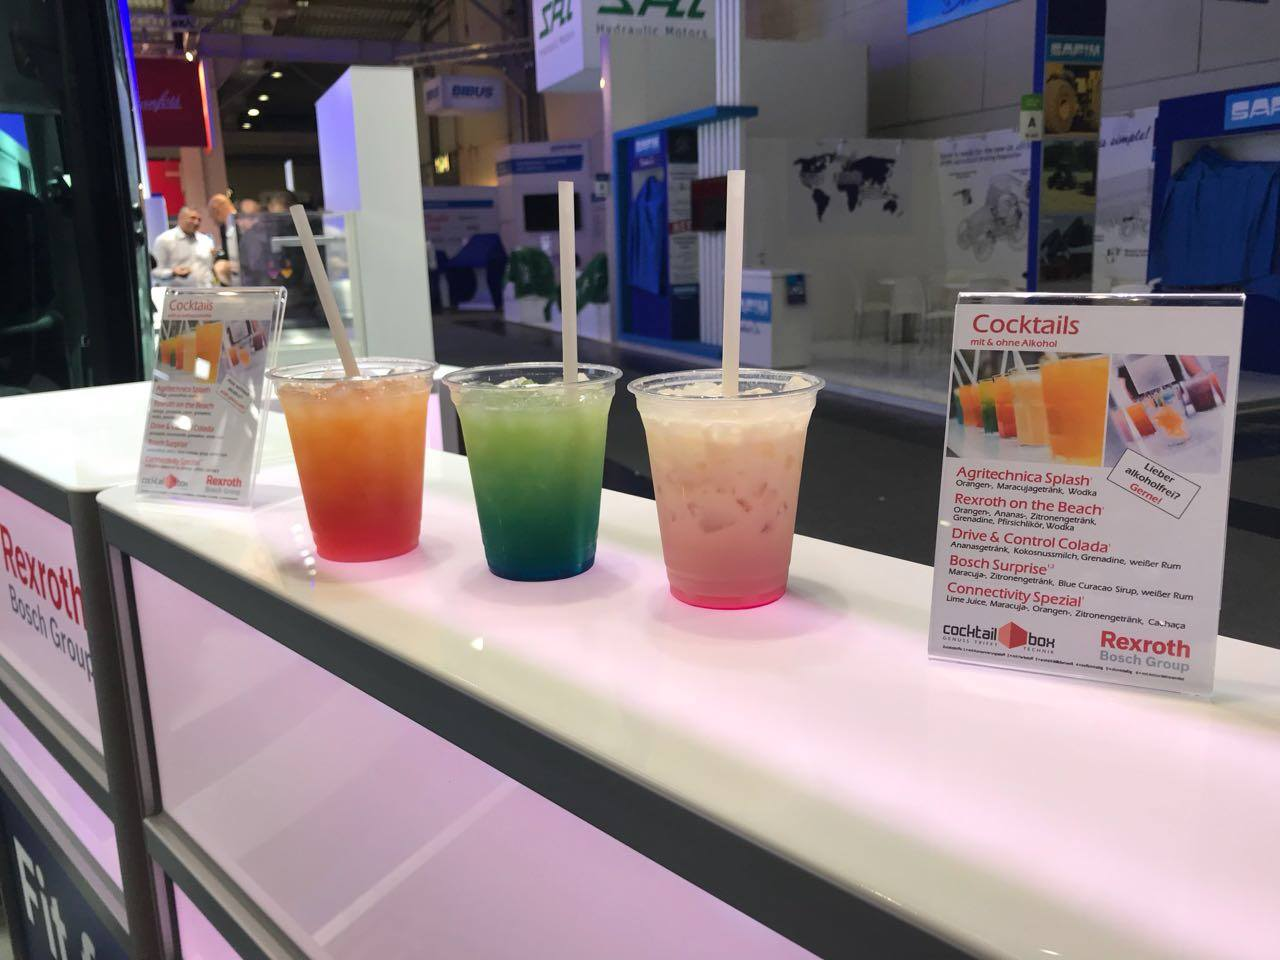 Rexroth_Bosch_Group_Messe_Hannover_2017_cocktail-box_3